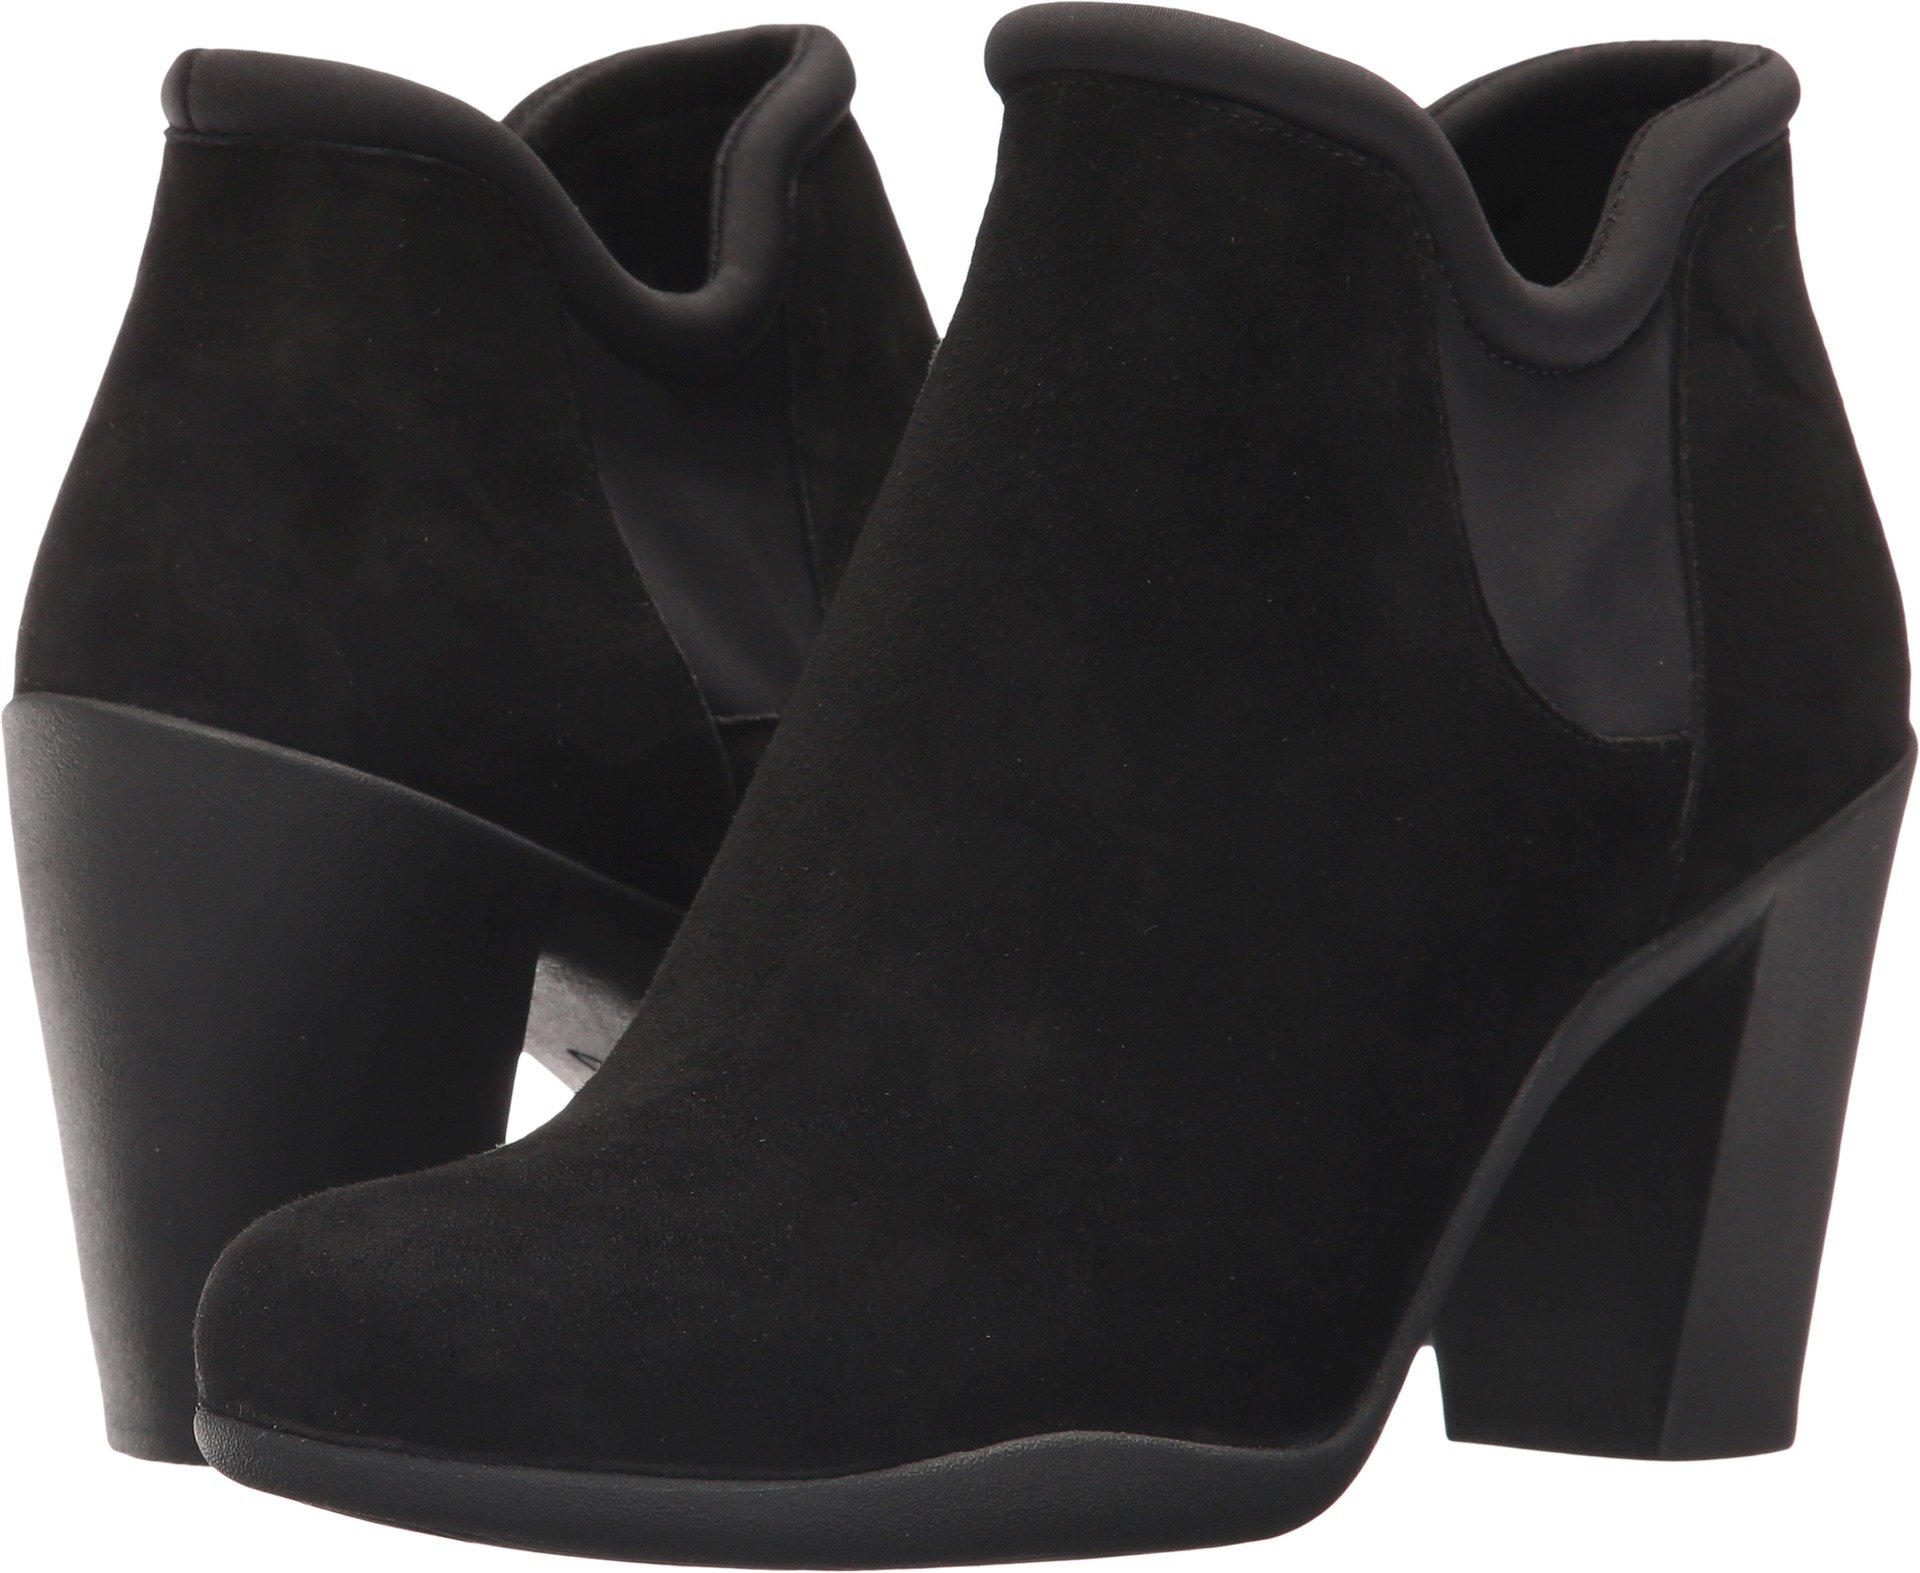 Clarks - Womens Adya Bella Low Boot, Size: 6.5 C/D US, Color: Black Suede